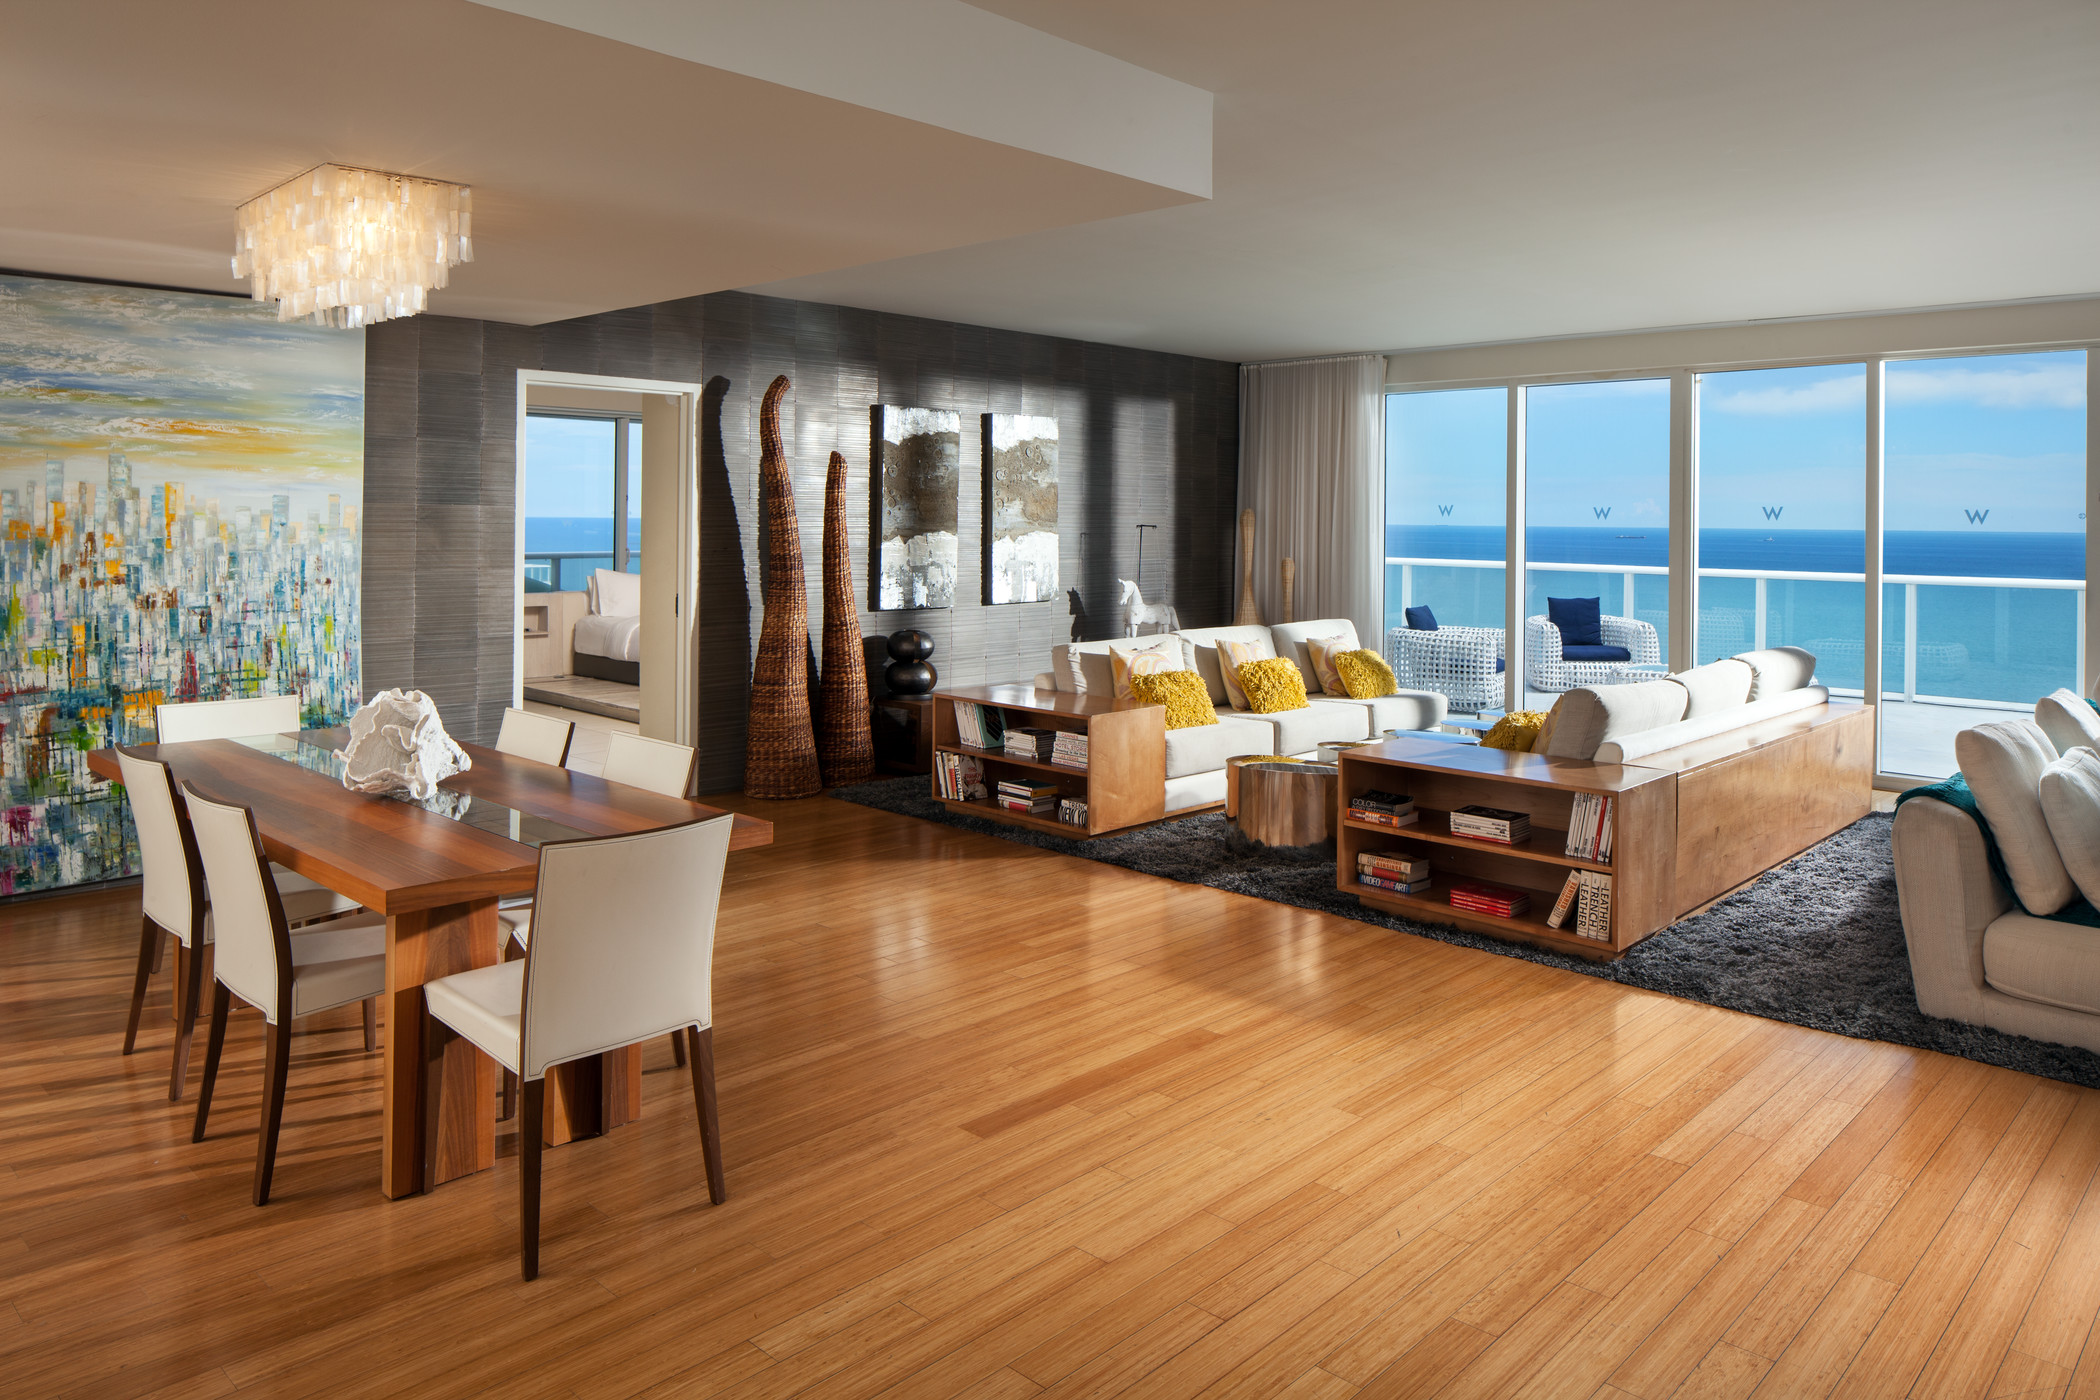 Living room and dining area with large mural and balconyl with ocean view